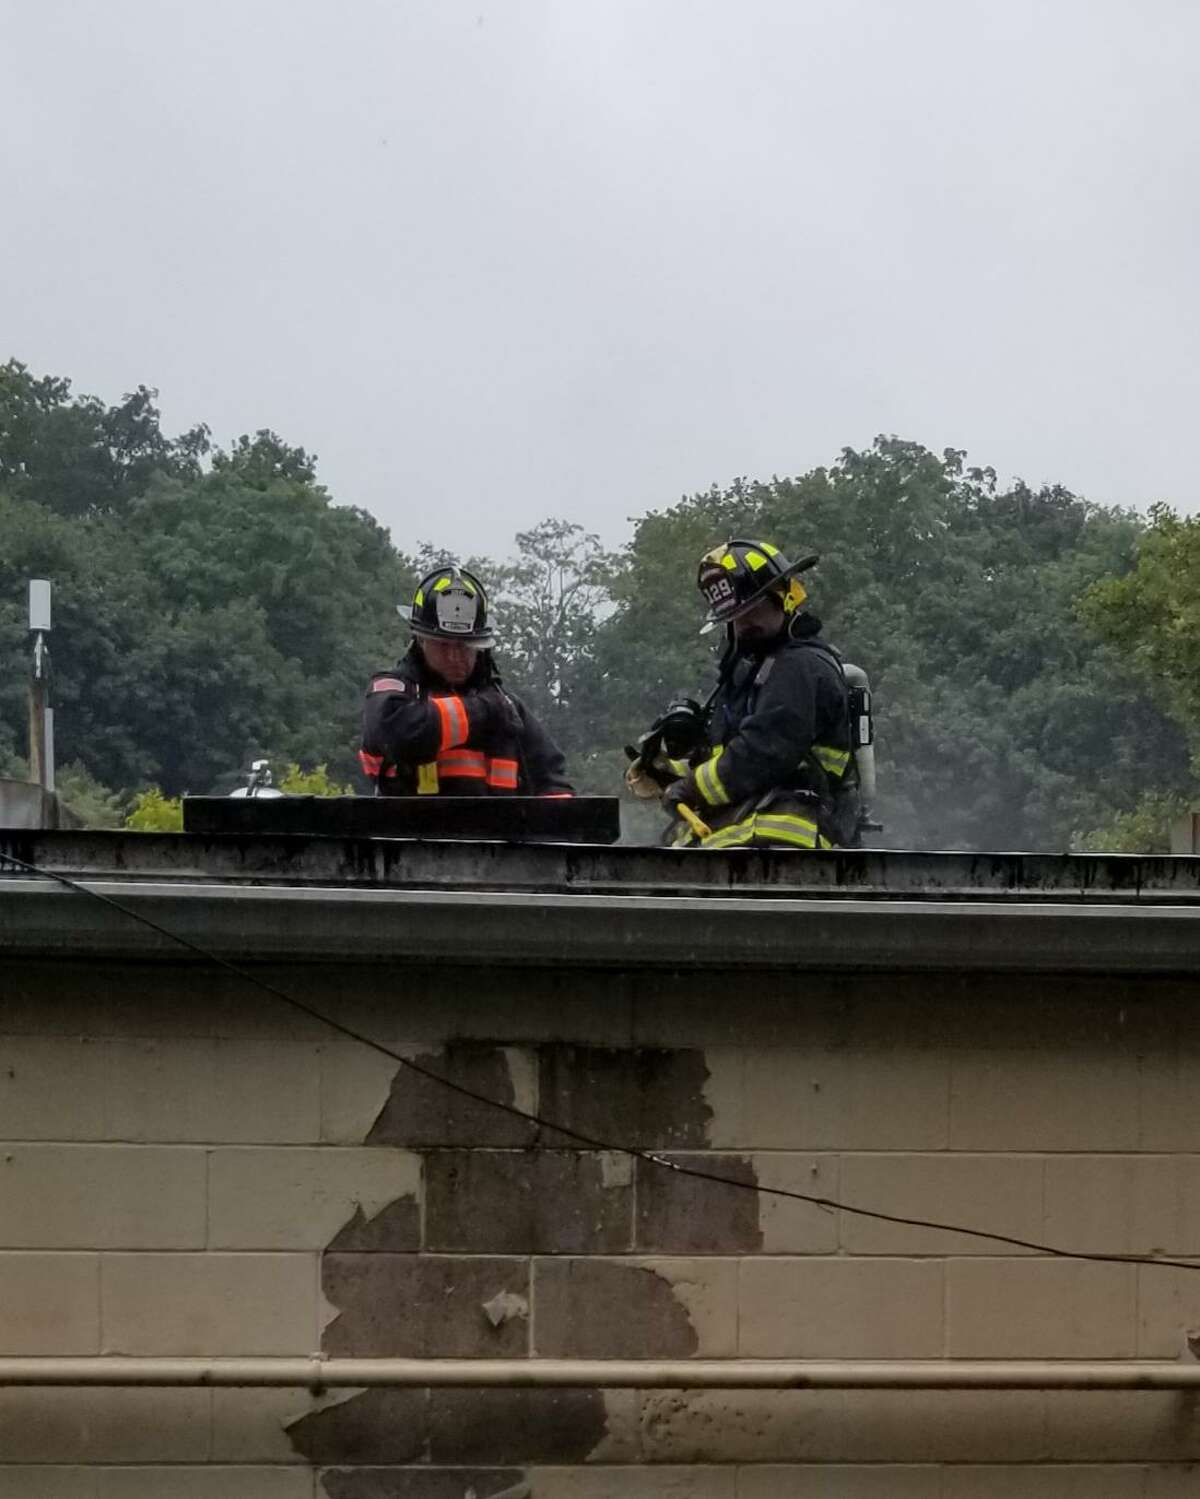 Crews work to extinguish a roof fire at a commercial building in Westport, Conn. Monday, Aug. 9, 2021